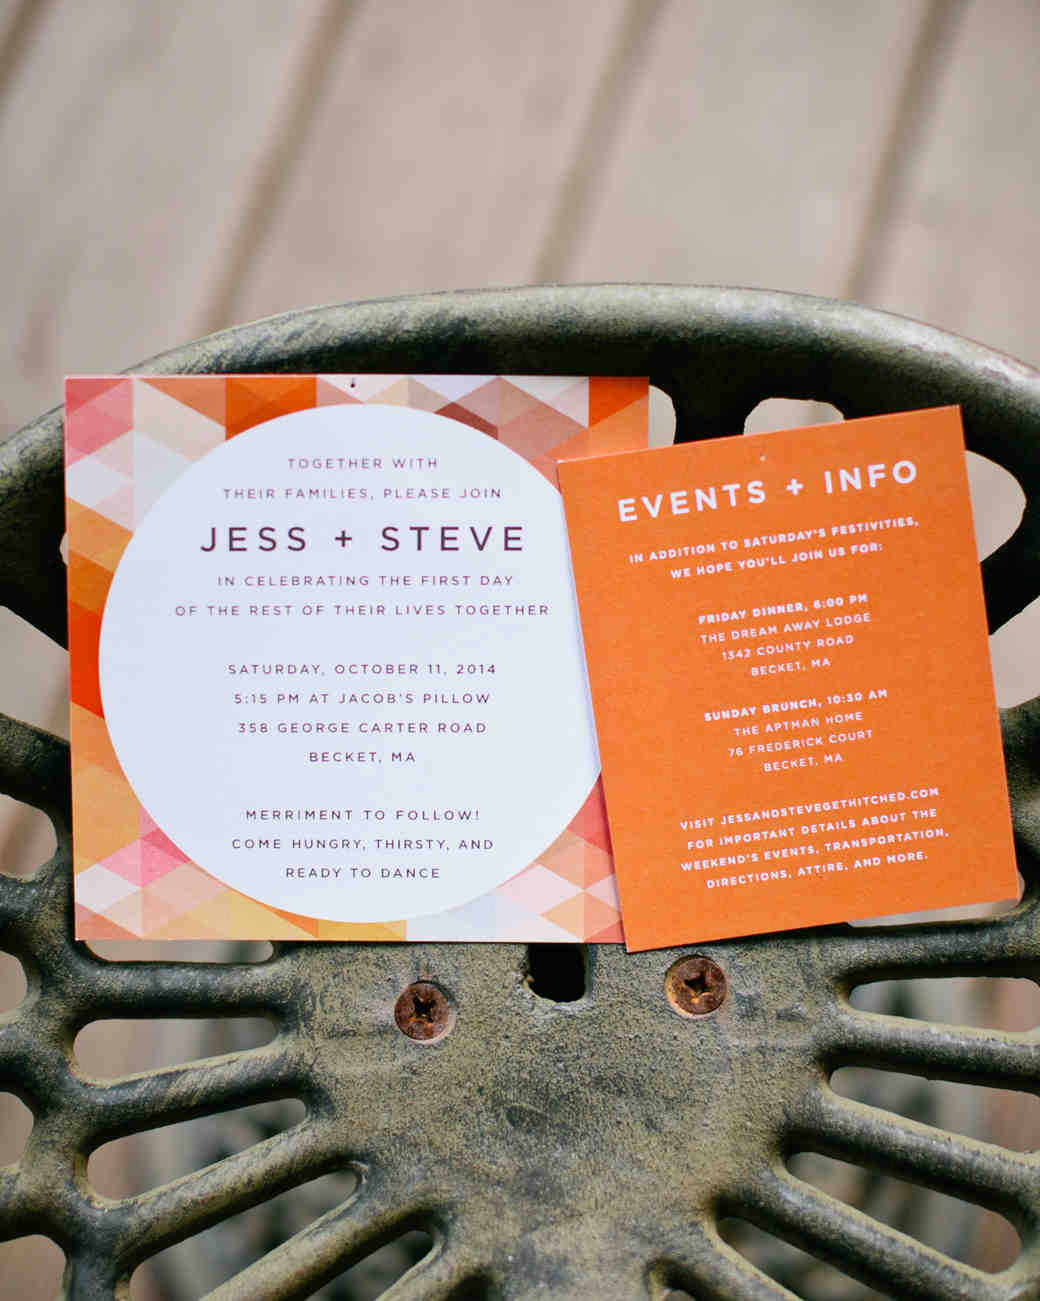 jess-steve-wedding-stationery-23-s112362-1115.jpg